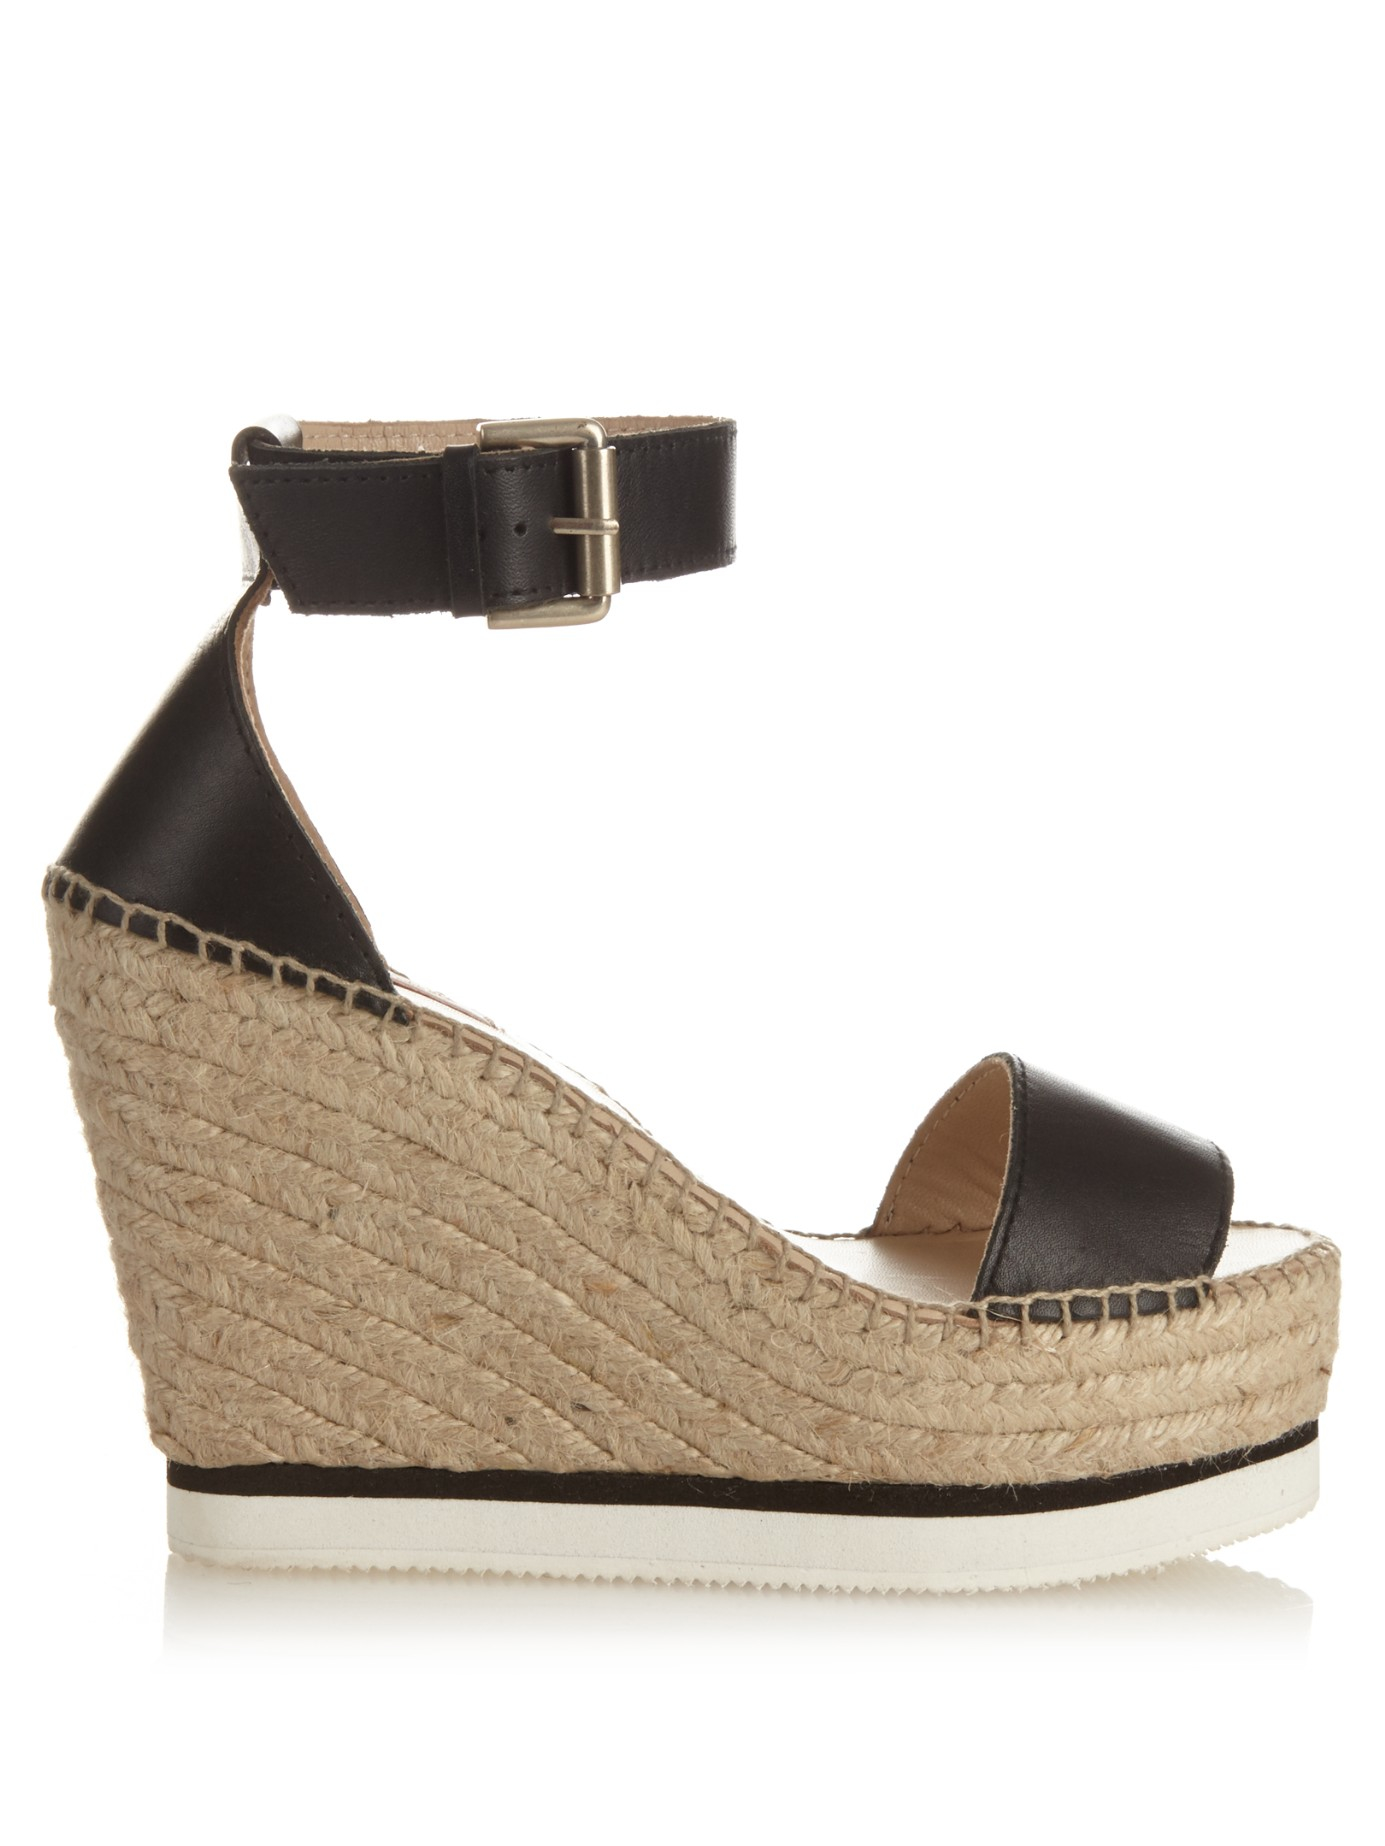 See by Chloé Leather Cage Sandals outlet new arrival genuine for sale L5k1JHj